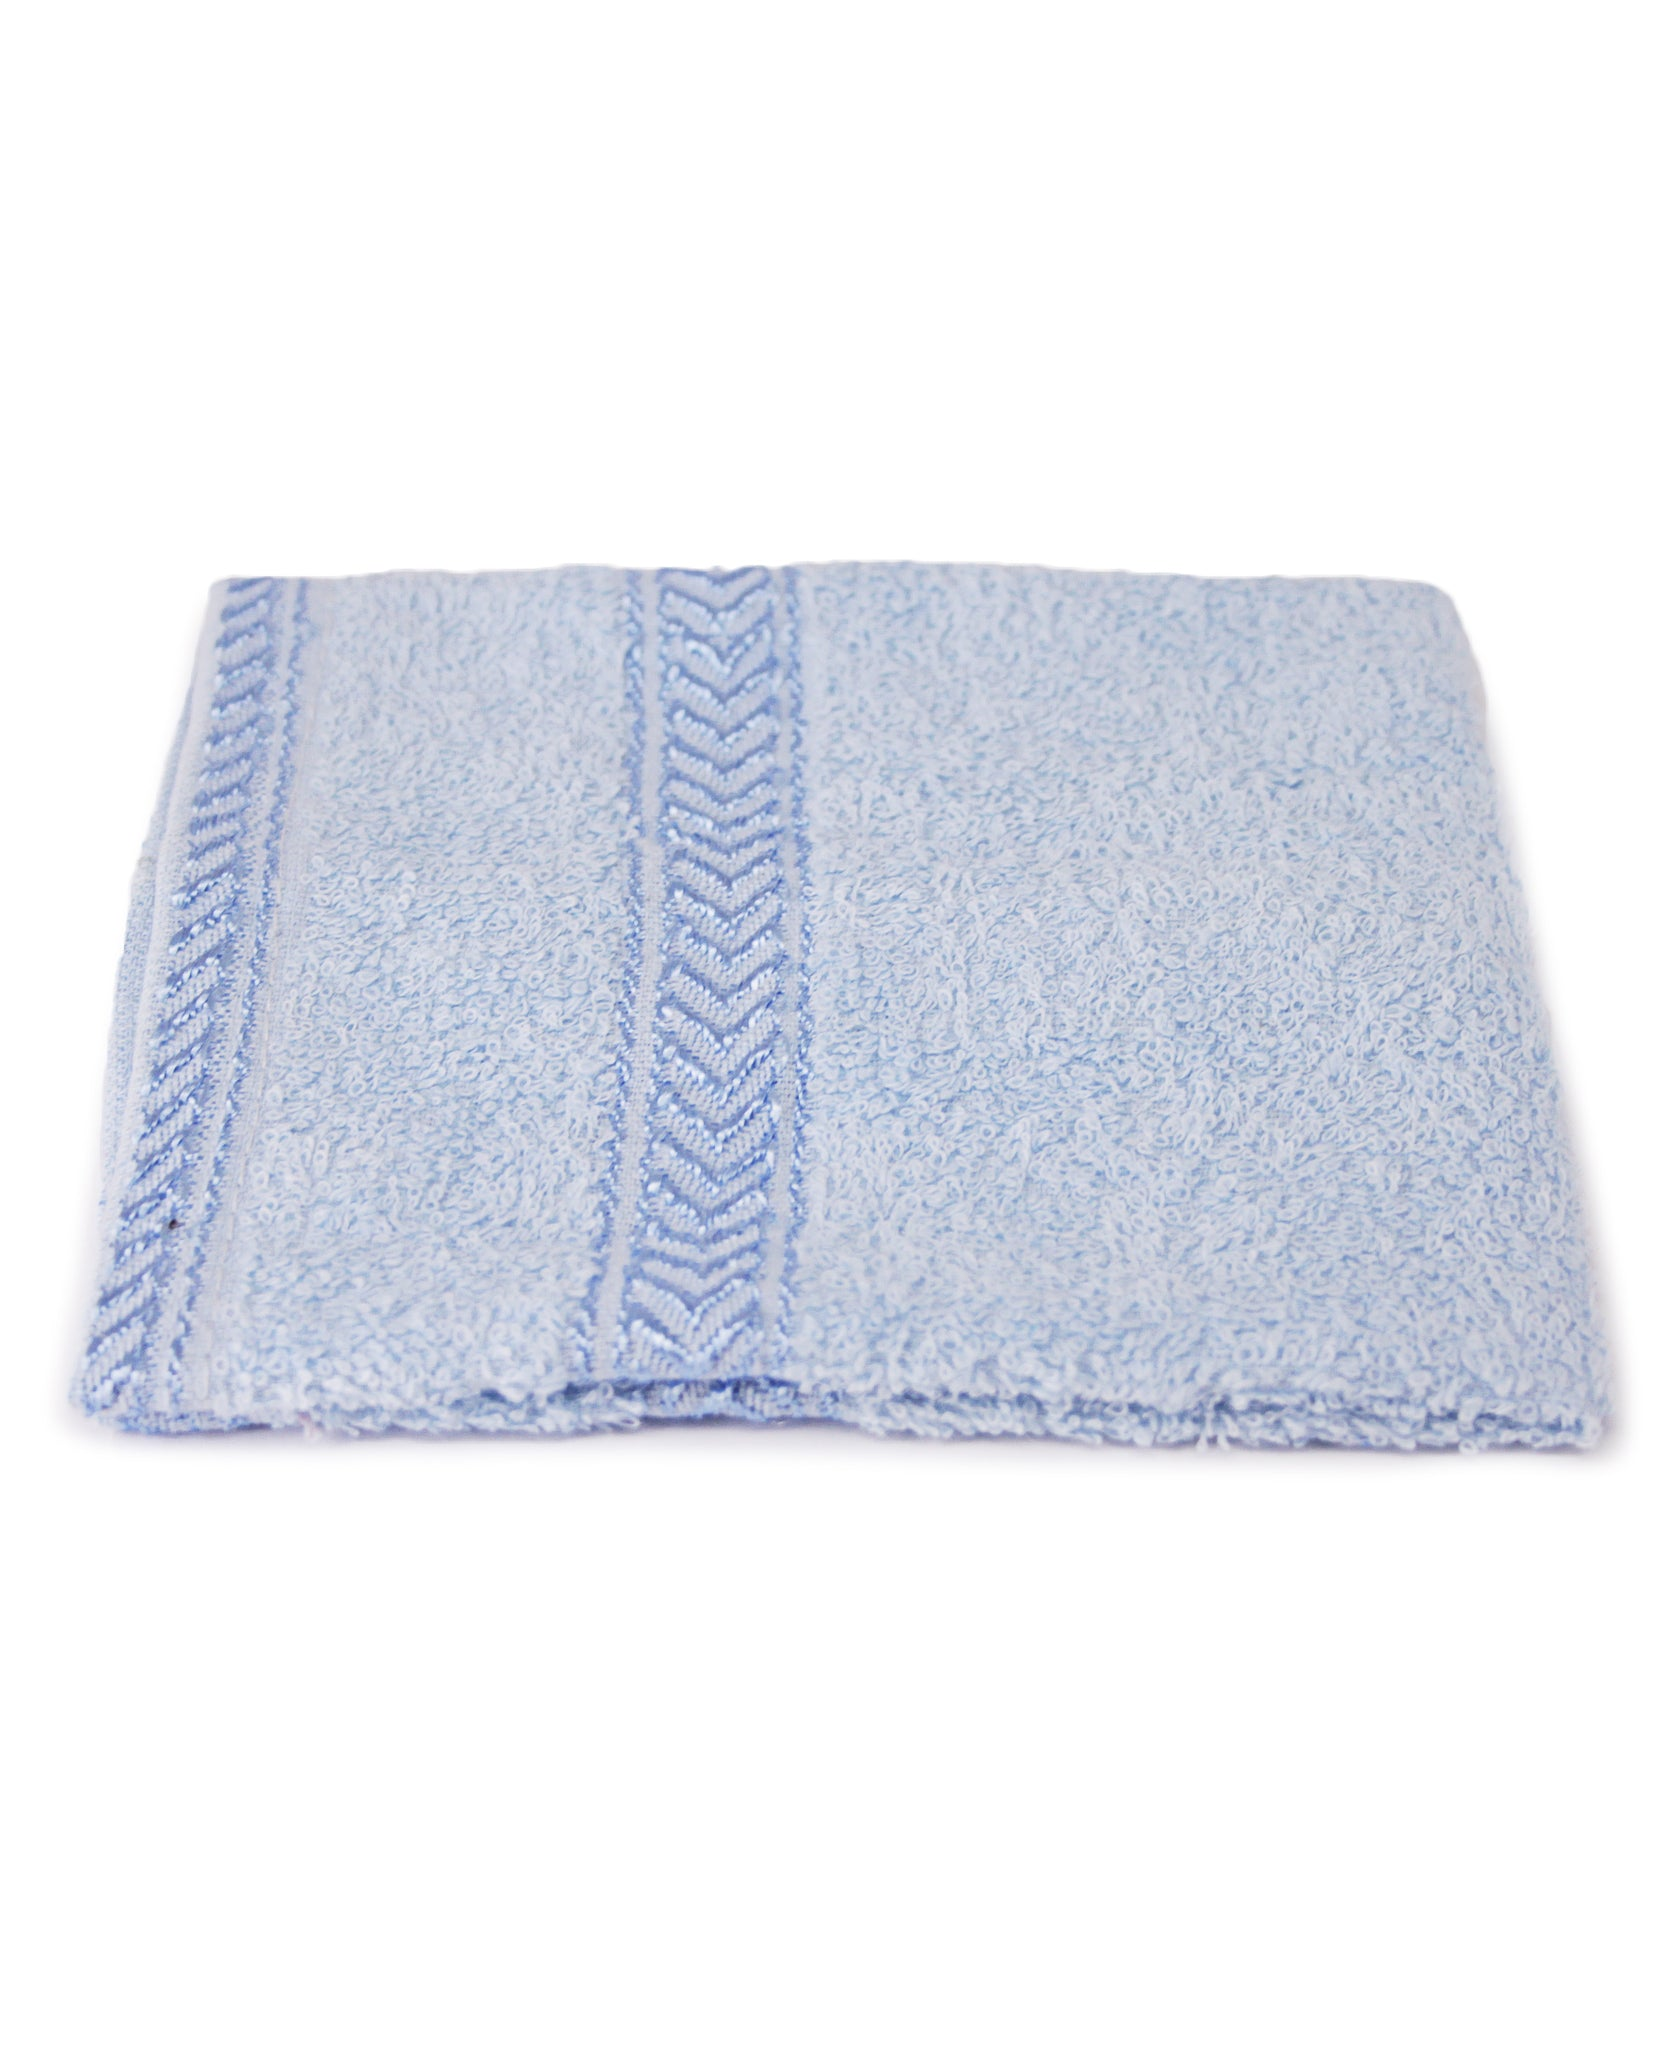 Face Cloth - Blue